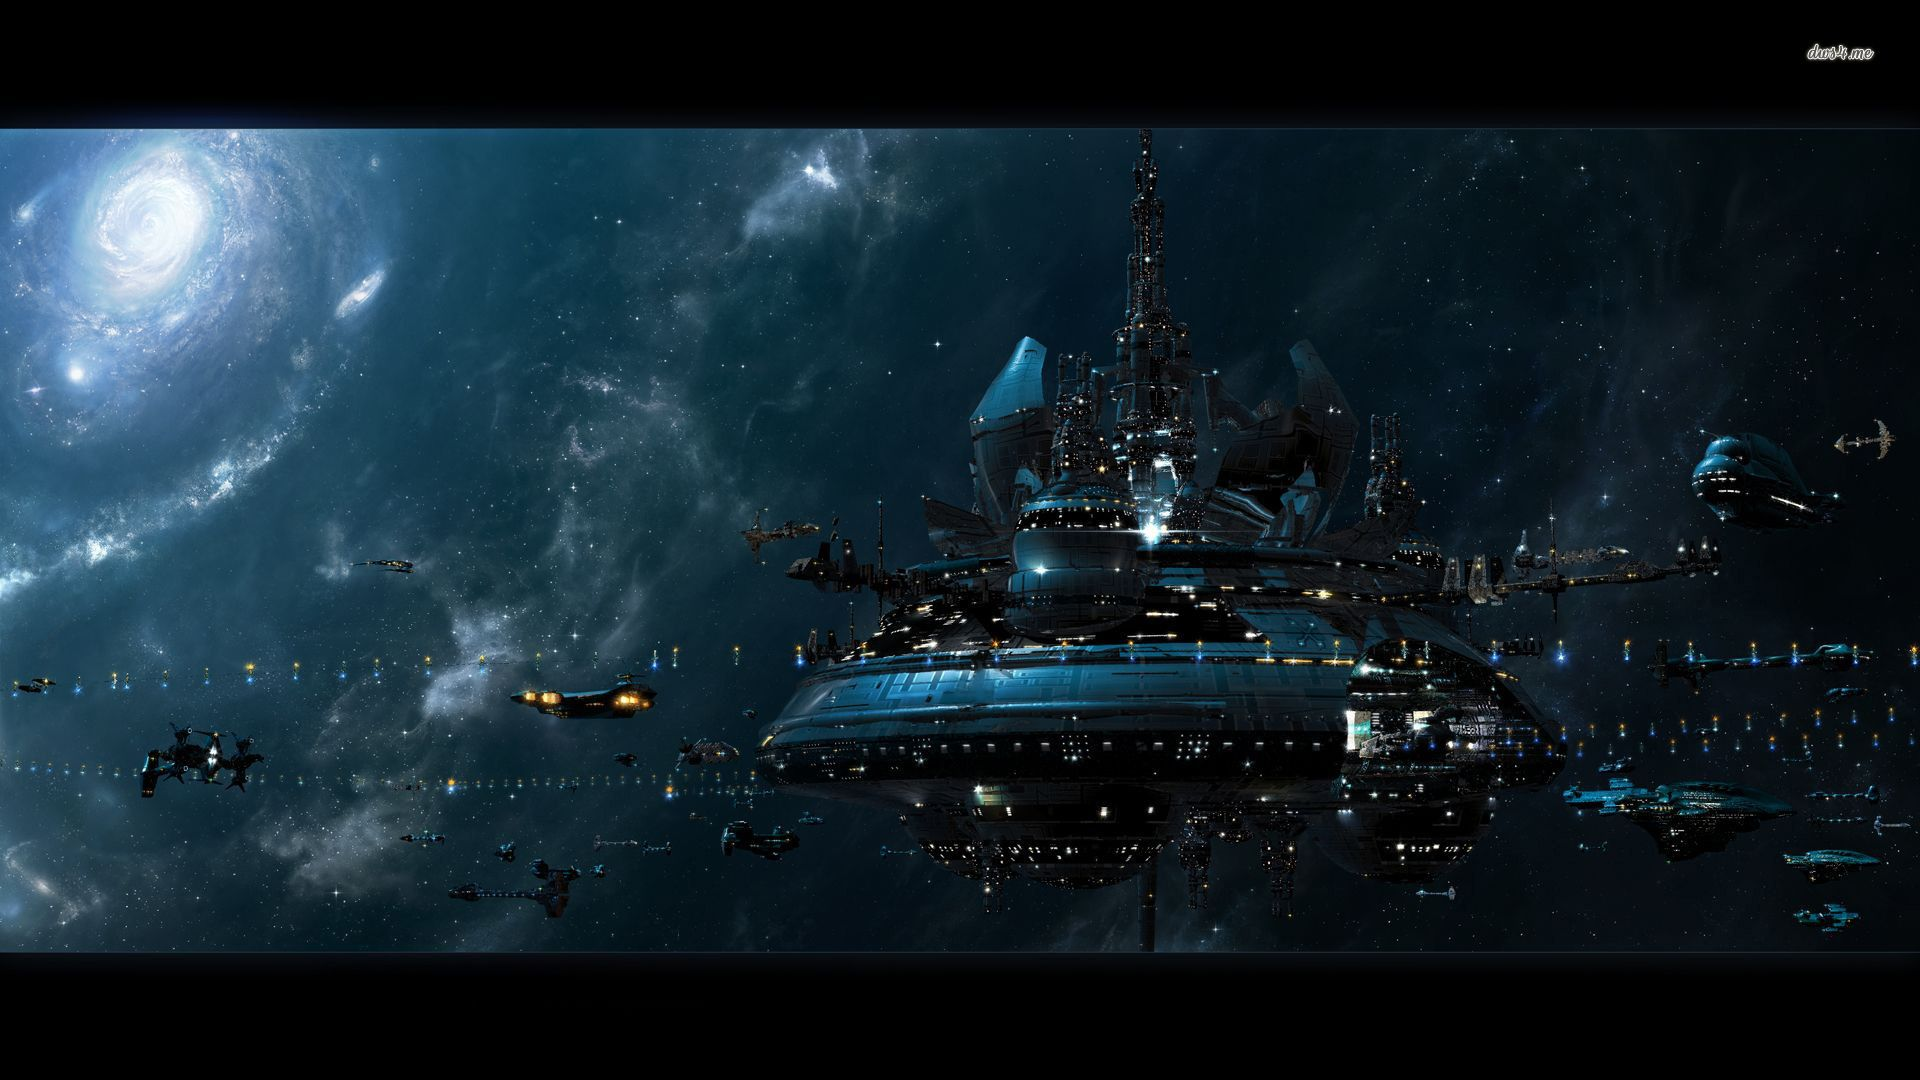 SpaceFantasy Wallpaper Set « Awesome Wallpapers